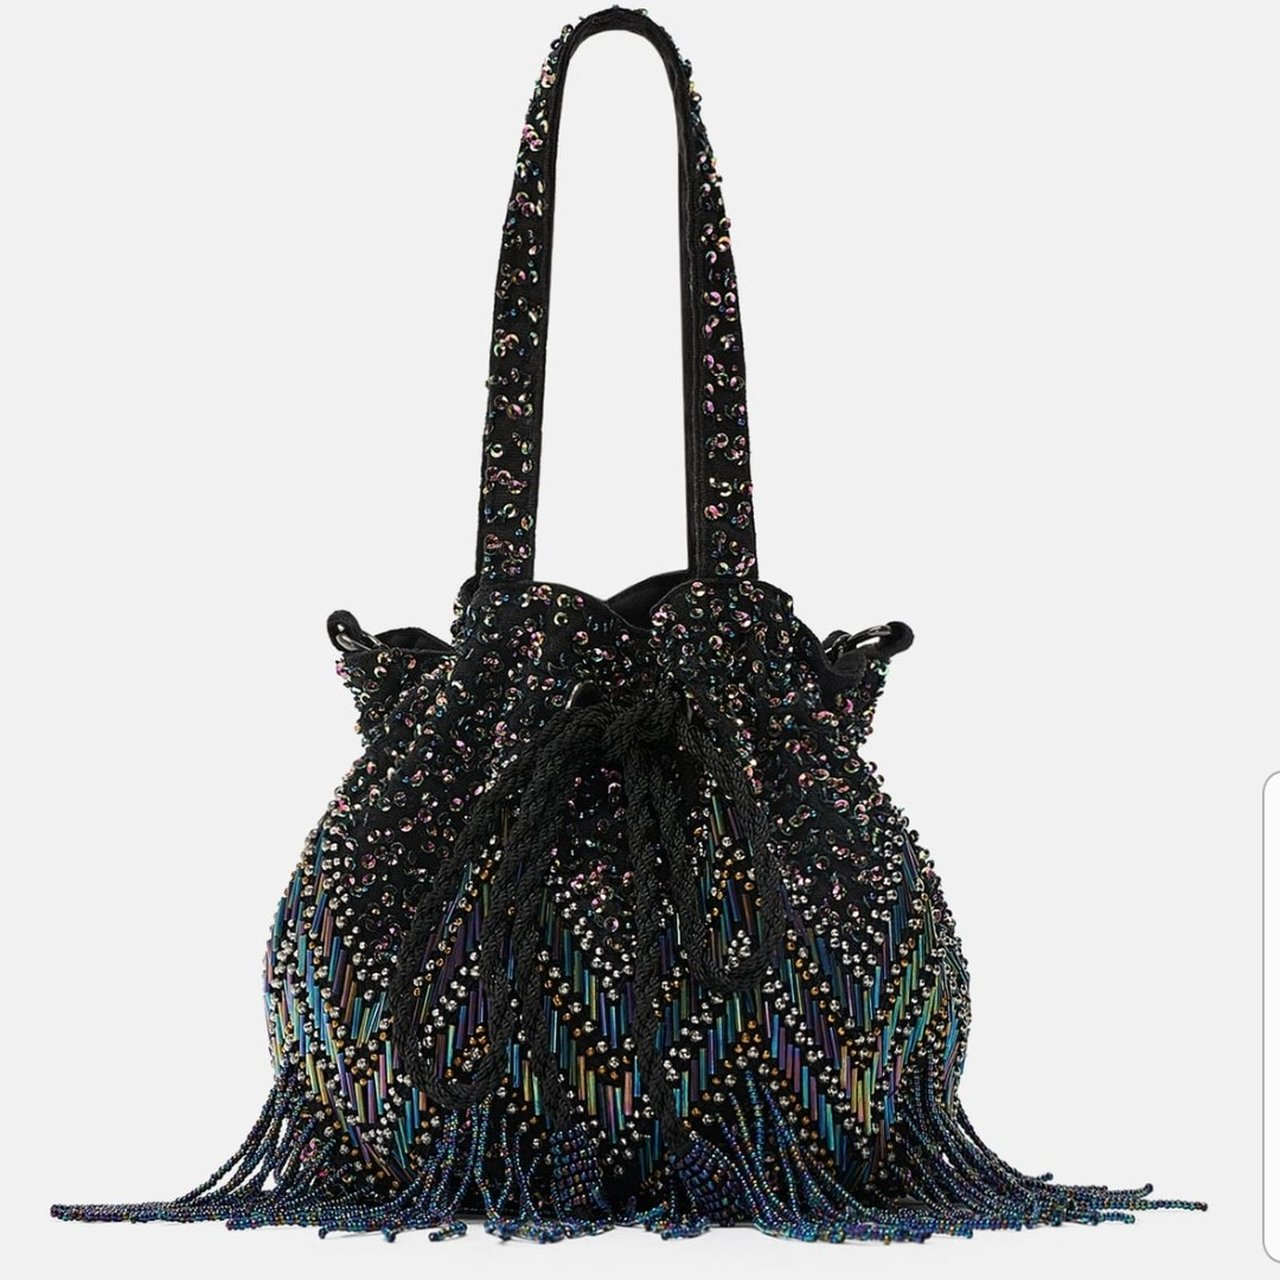 20df585c84d @h6789. 6 days ago. Merseyside, United Kingdom. Zara handbag used once  embellished in perfect condition with chain strap